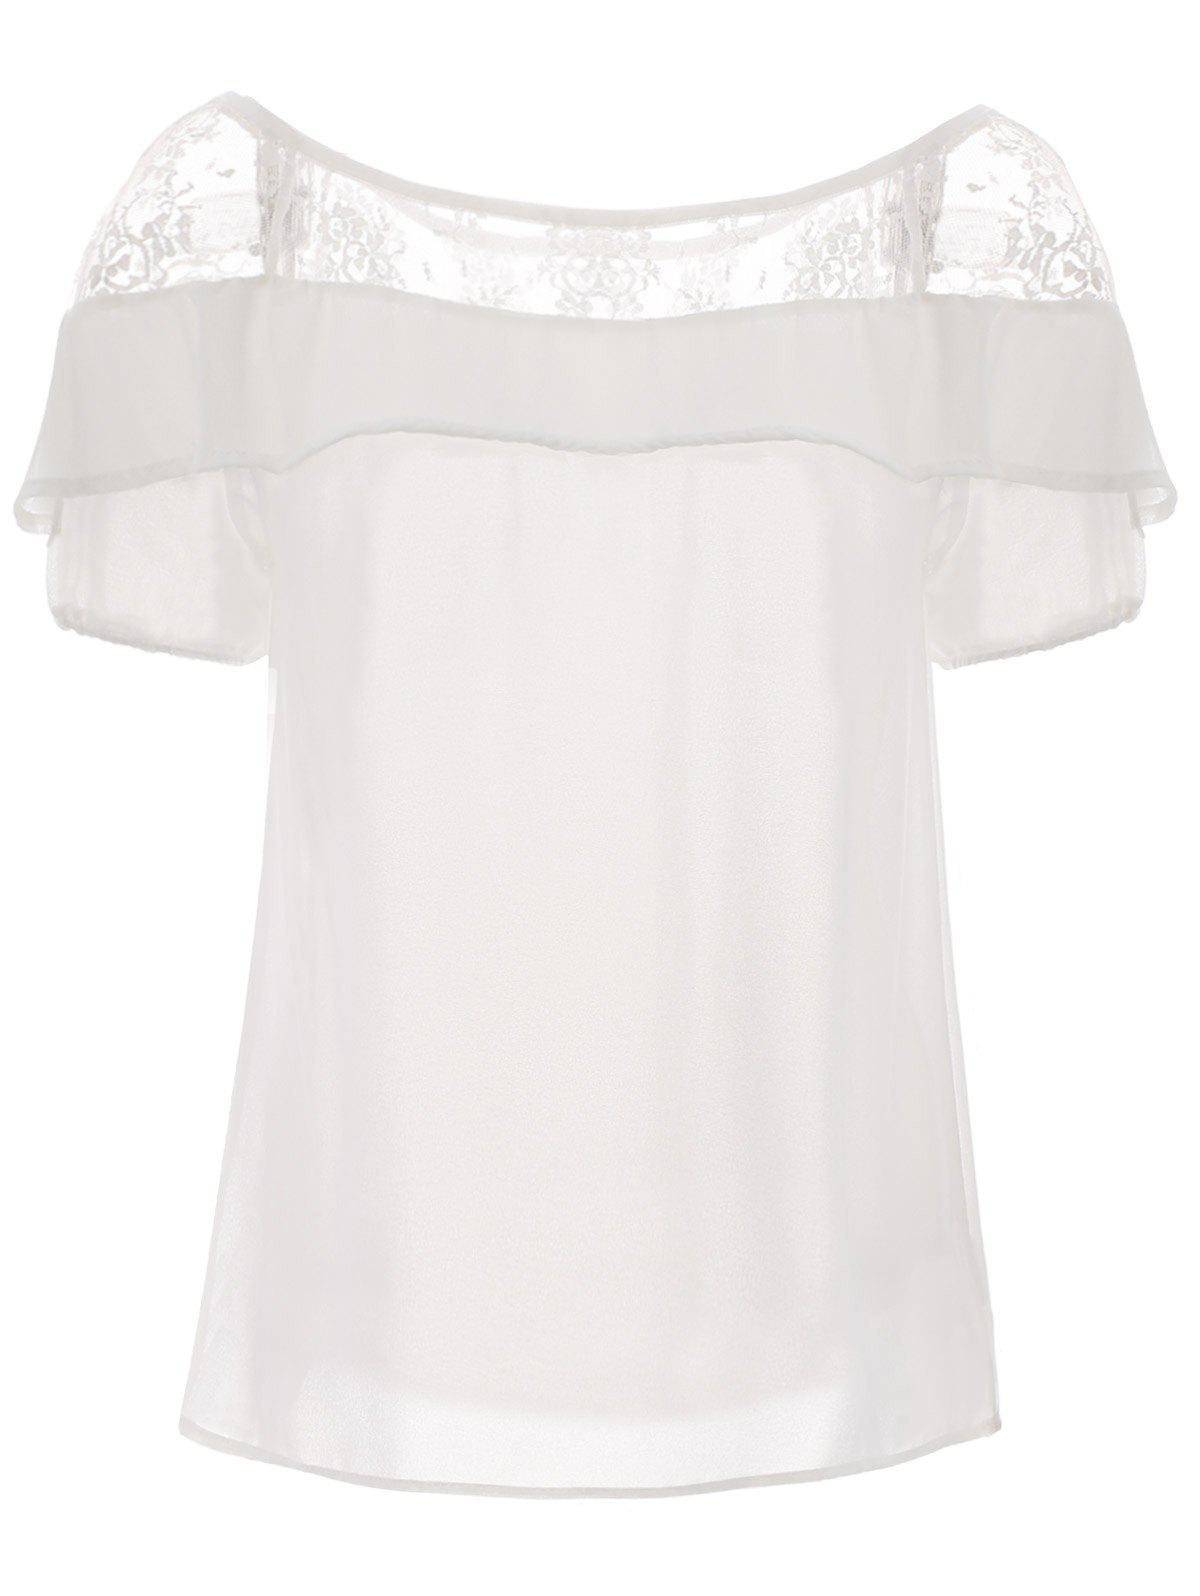 Lace Trim Ruffle Top - WHITE XL